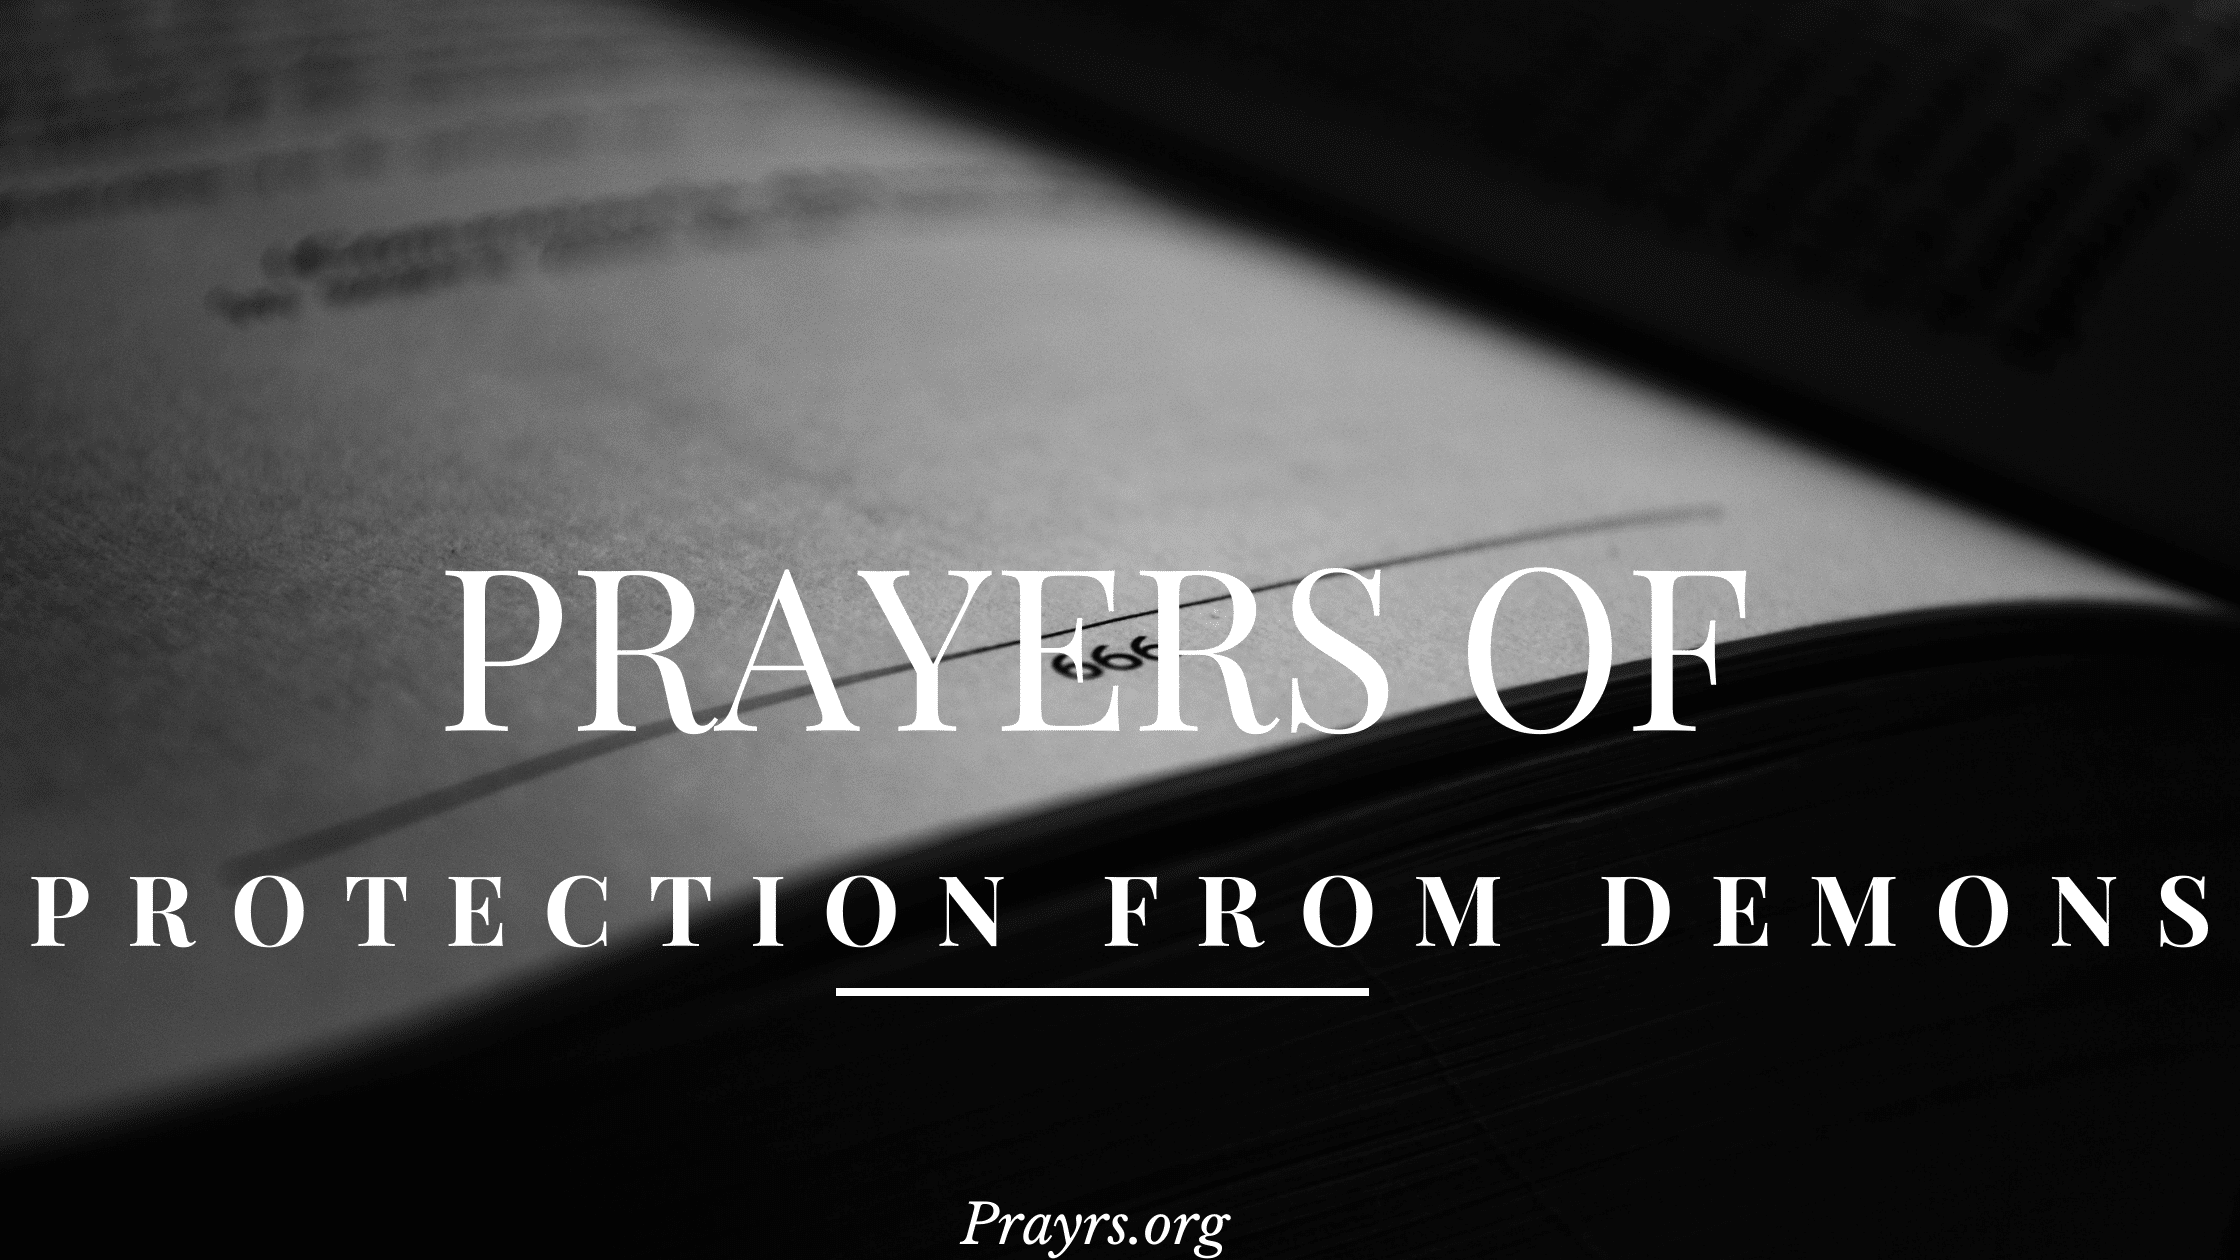 Prayers of Protection From Demons